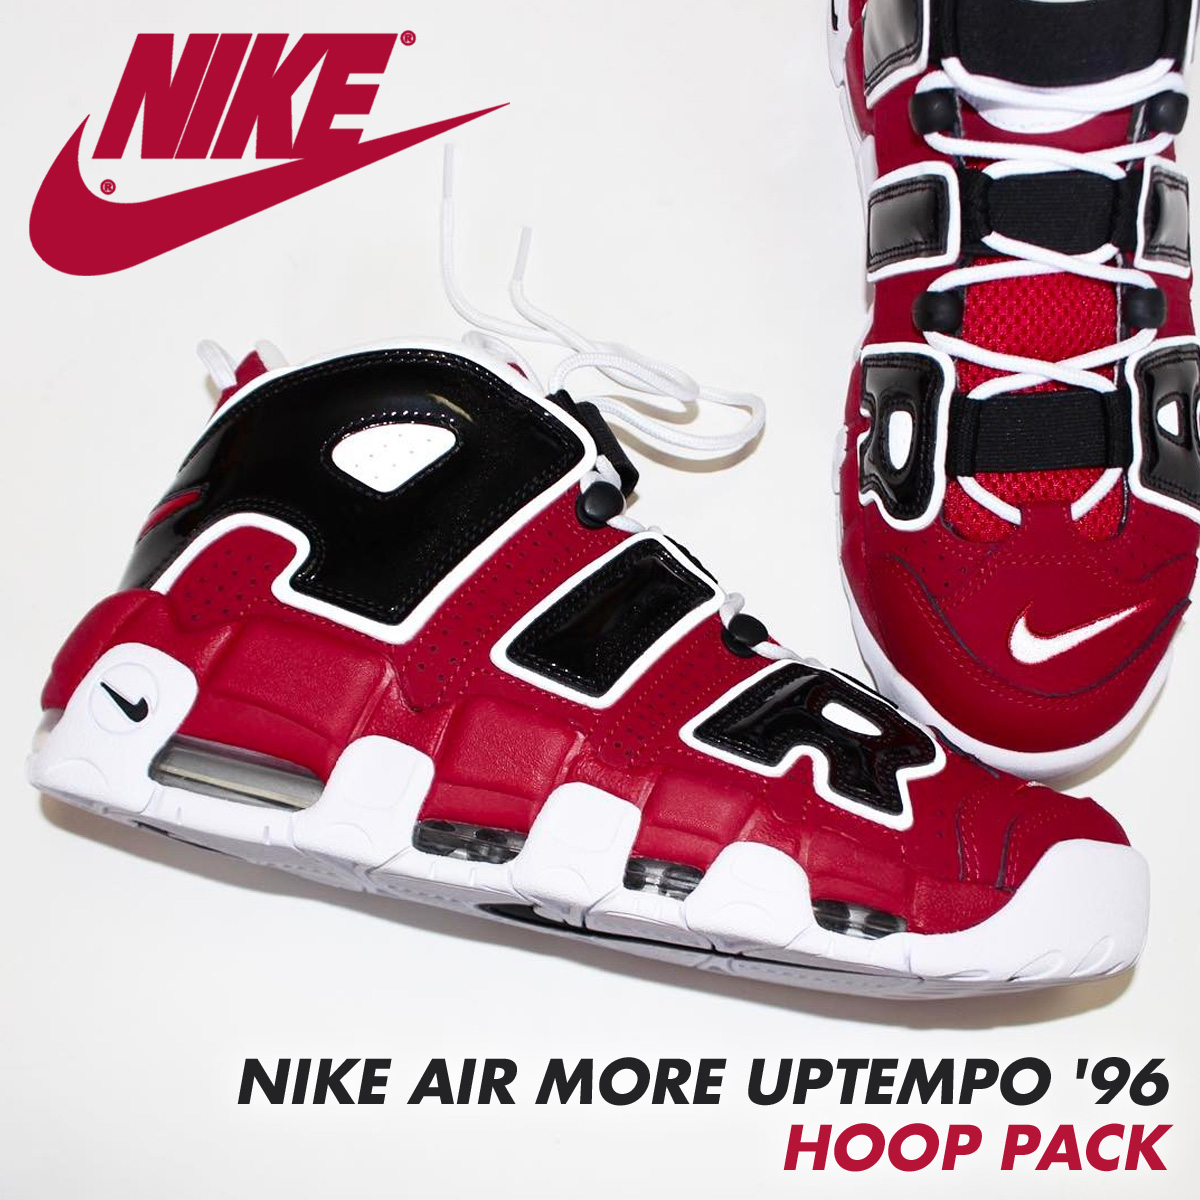 sports shoes 98f1e 1a86e NIKE Nike more up tempo sneakers AIR MORE UPTEMPO  96 HOOP PACK 921,948-600  men s shoes red  load planned Shinnyu load in reservation product 5 8 ...